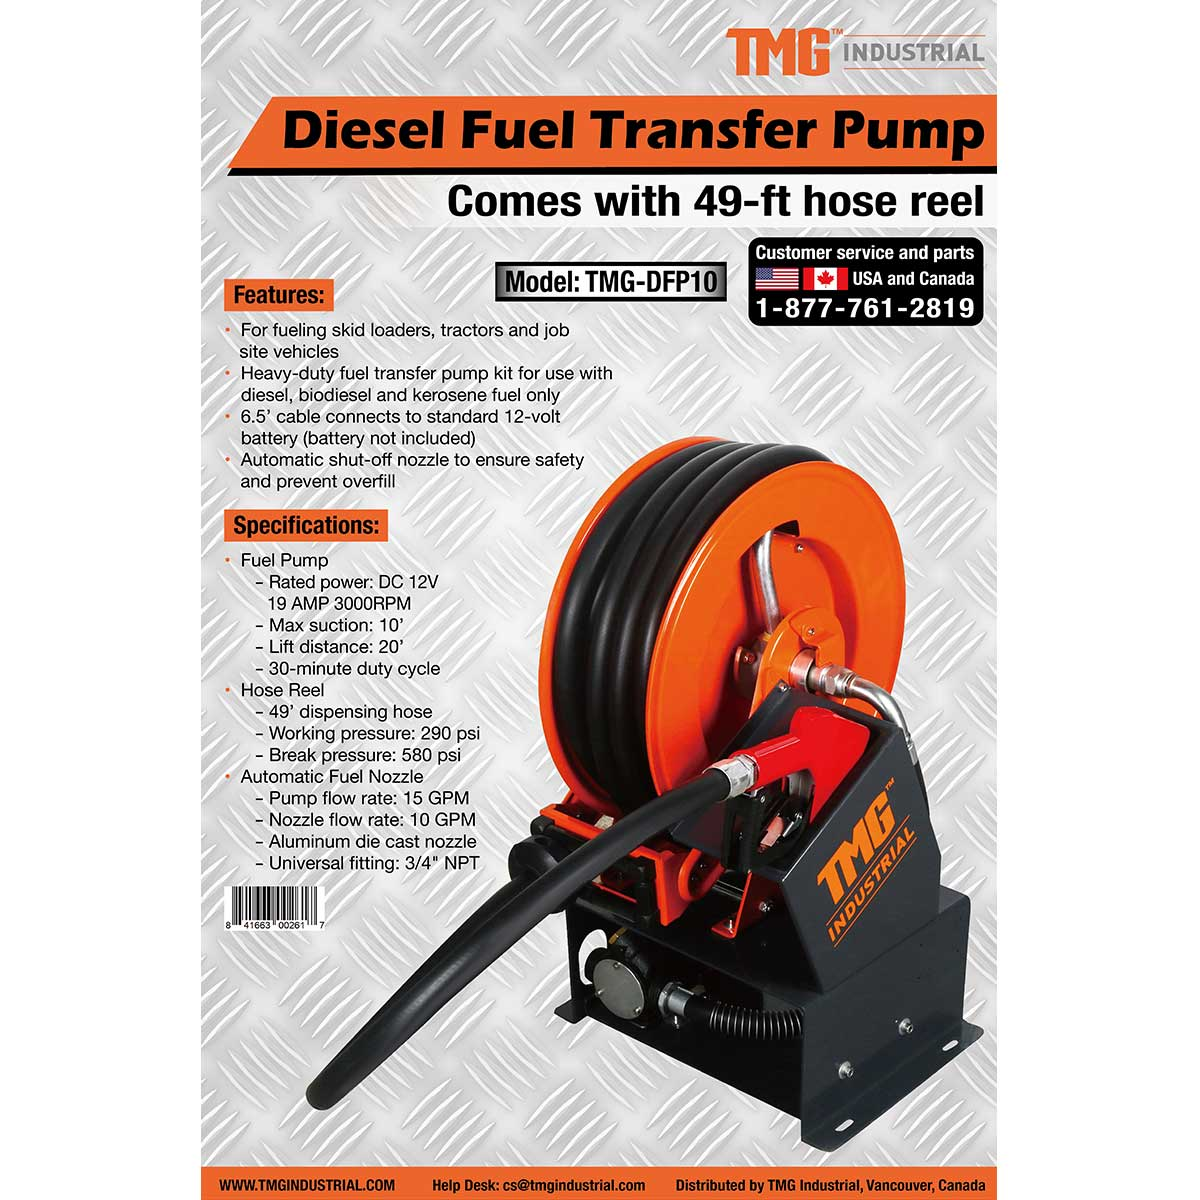 12V Portable Diesel Fuel Tank Transfer Pump with 49-ft Hose Reel, Commercial Grade